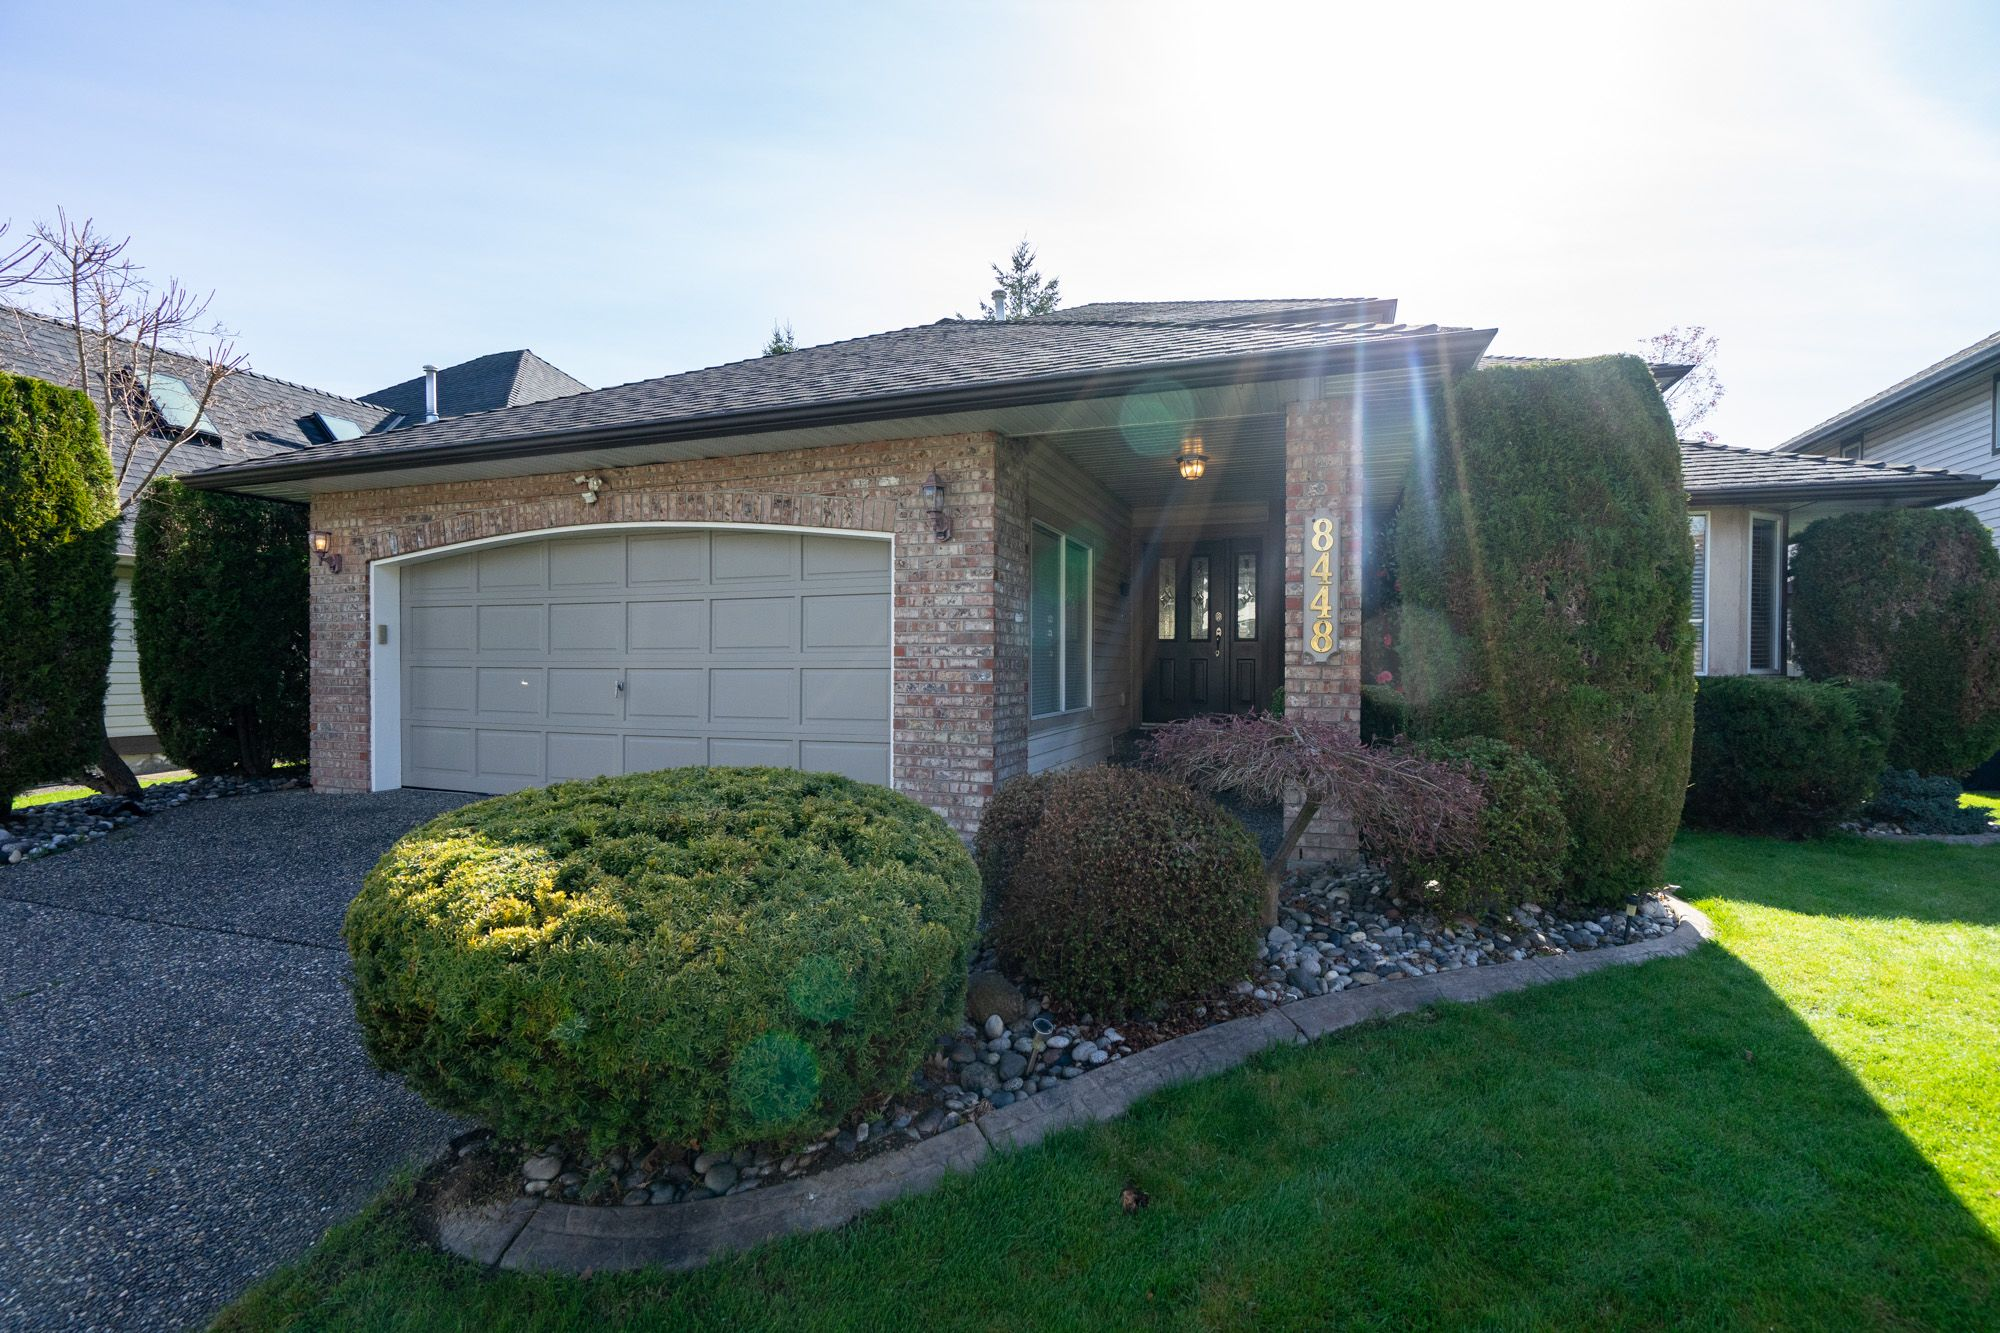 """Photo 2: Photos: 8448 213 Street in Langley: Walnut Grove House for sale in """"Forest Hills"""" : MLS®# R2259409"""